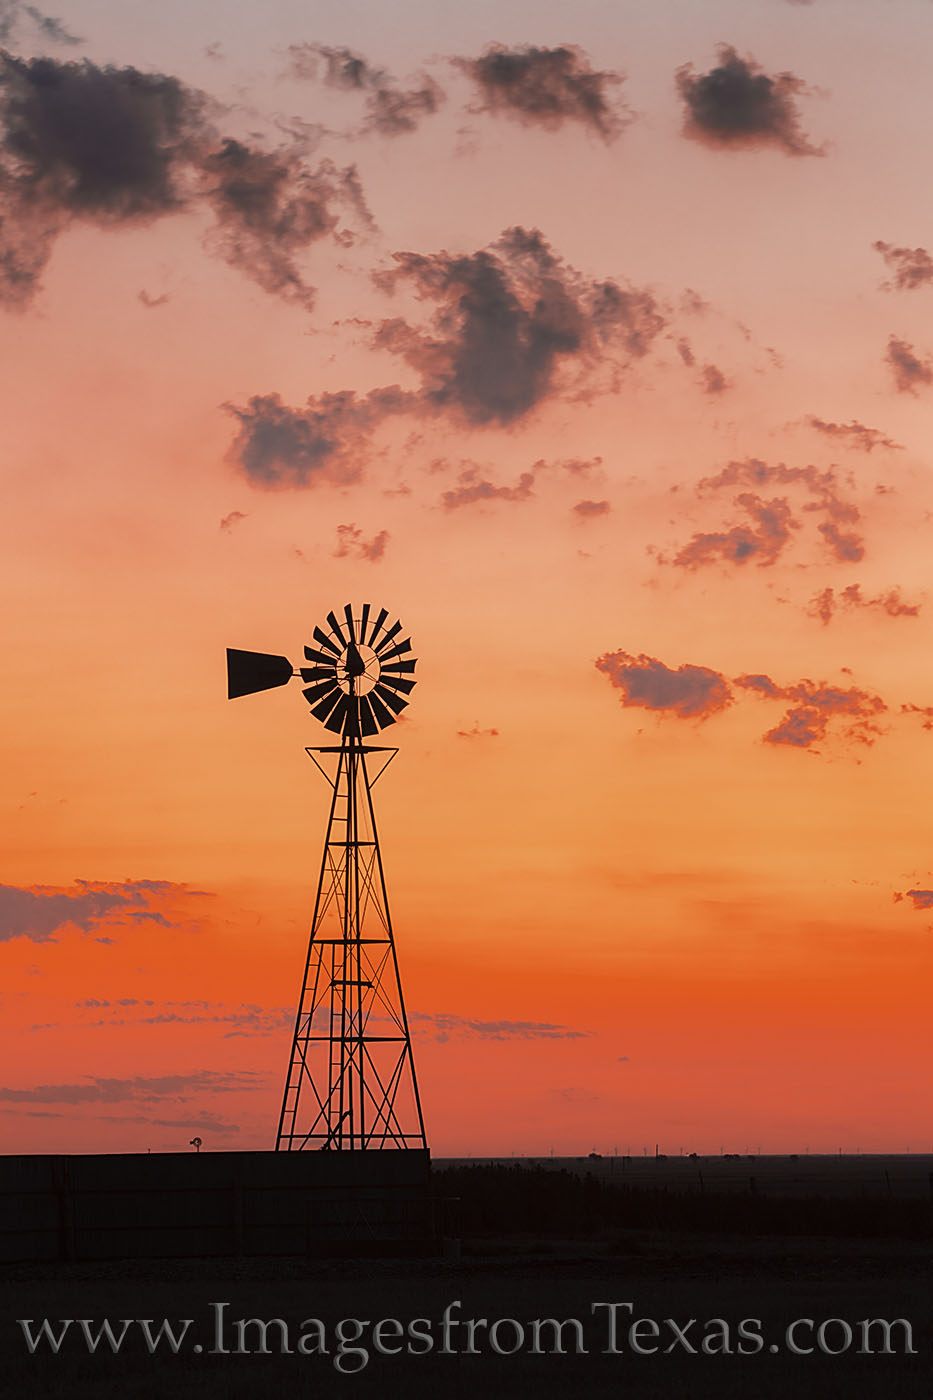 On an unusually cold July morning, a lone windmill stands alone against an orange sky about 20 minutes before sunrise.